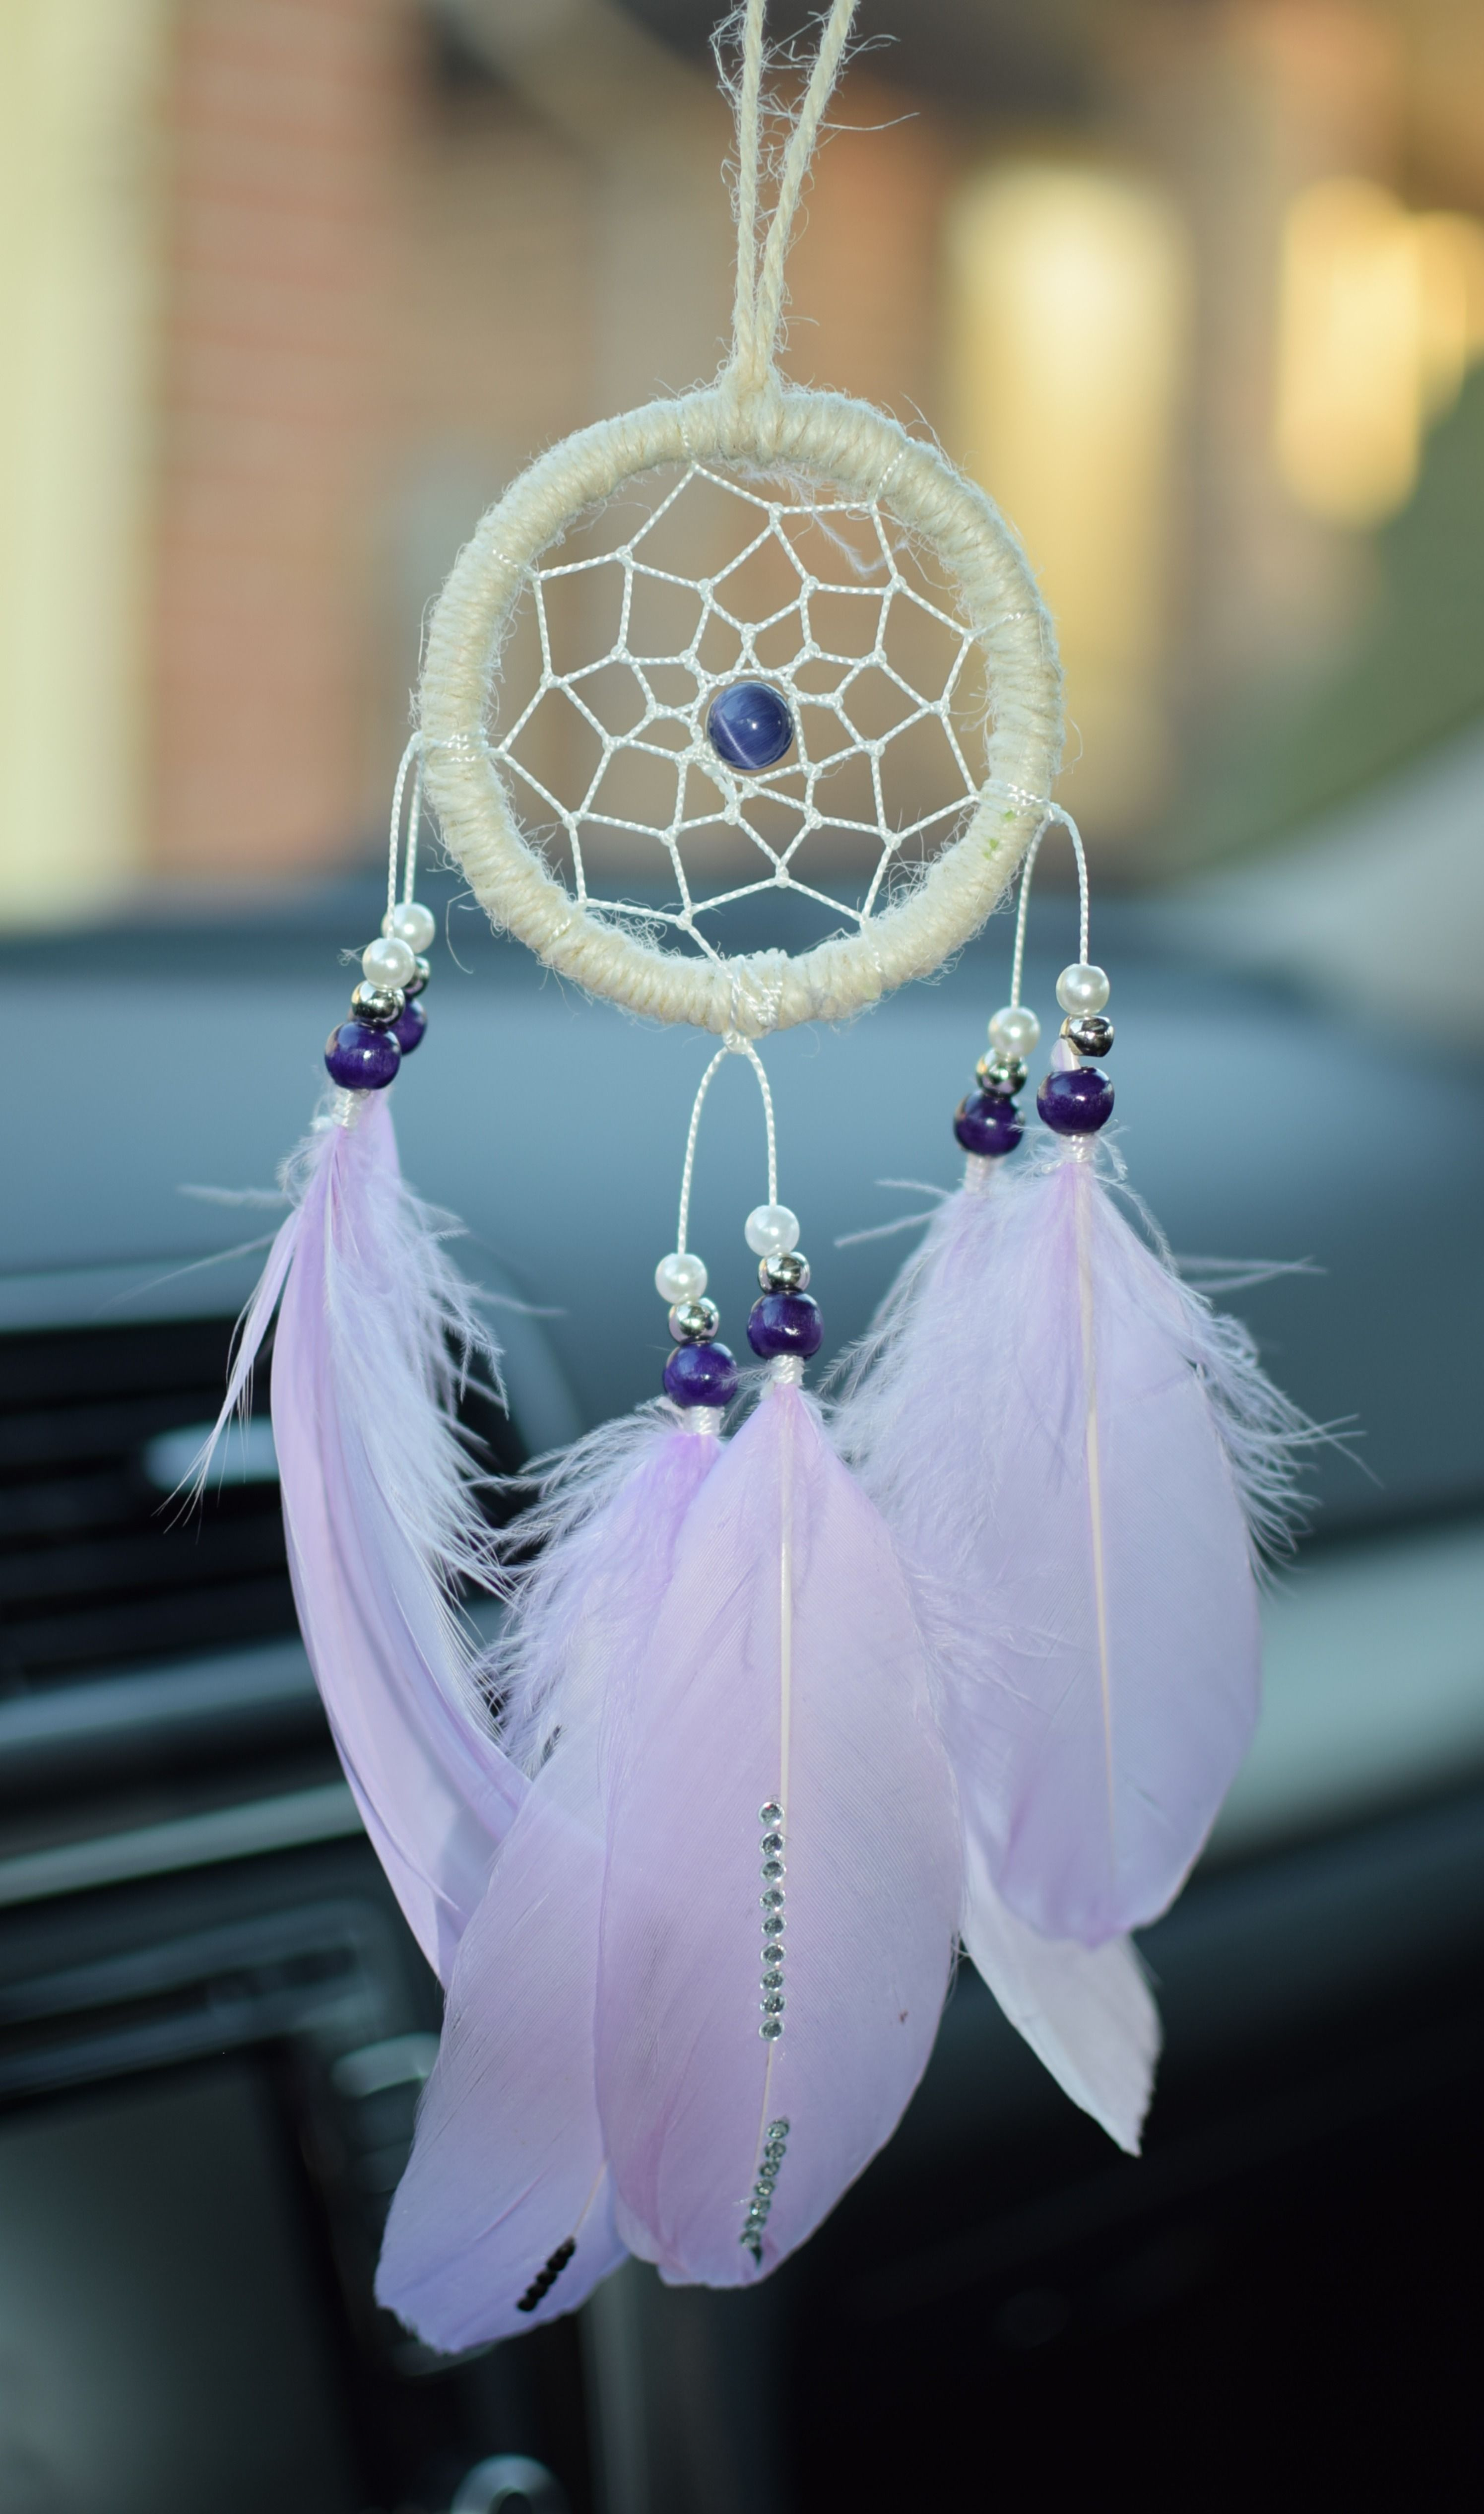 24 IN LARGE RAINBOW BLUE DREAMCATCHER new dreams decor feathers beads webbed